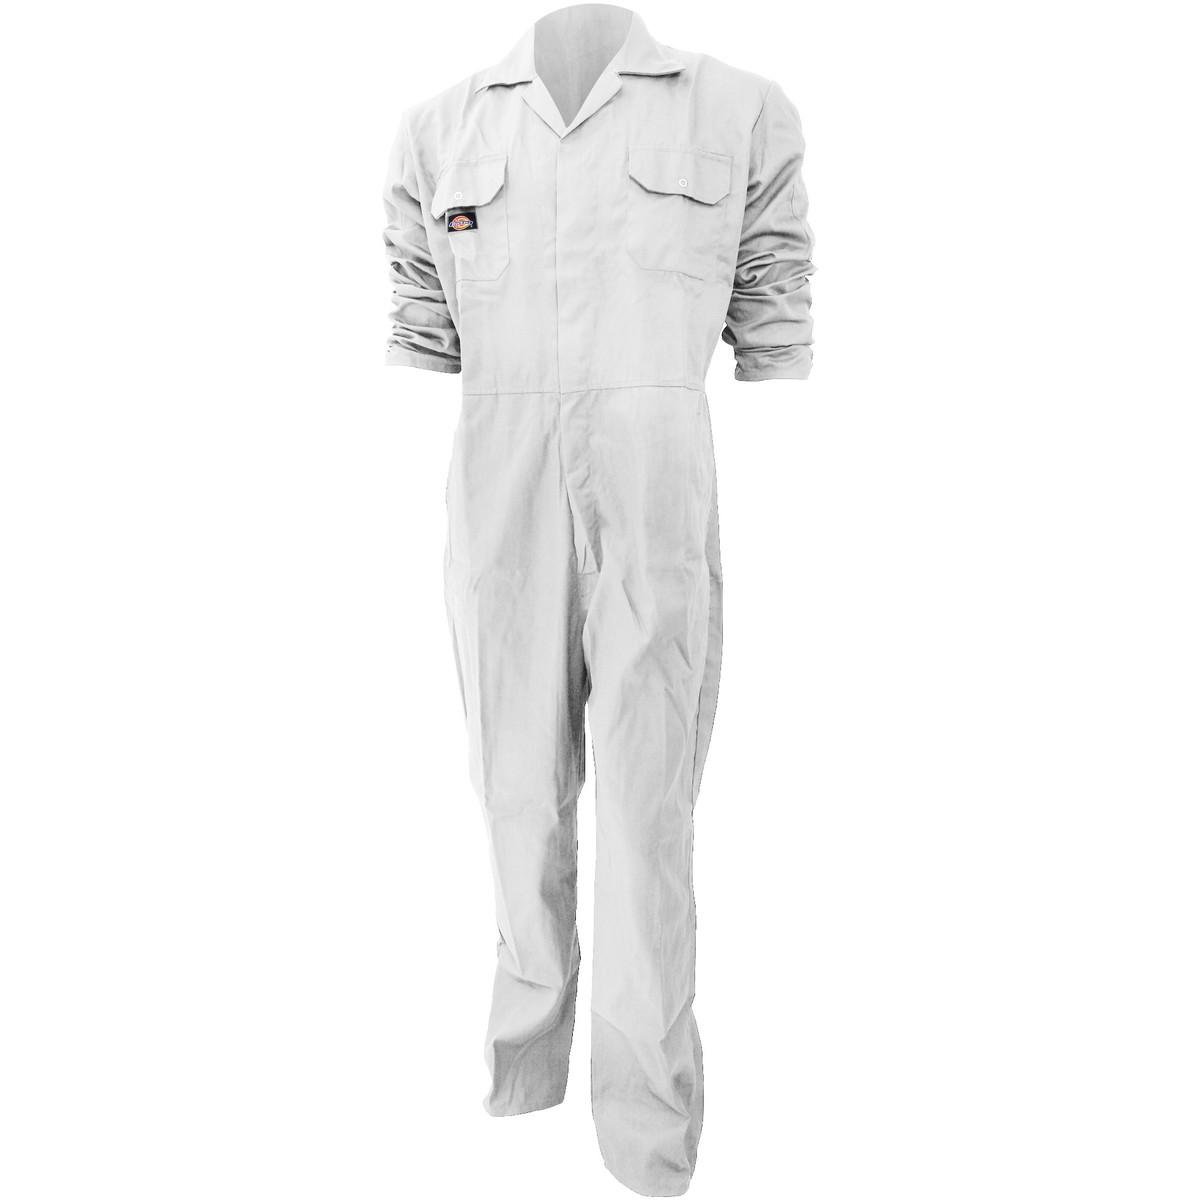 43be76dce Dickies Redhawk Economy Stud Front Coverall Regular Mens Workwear ...